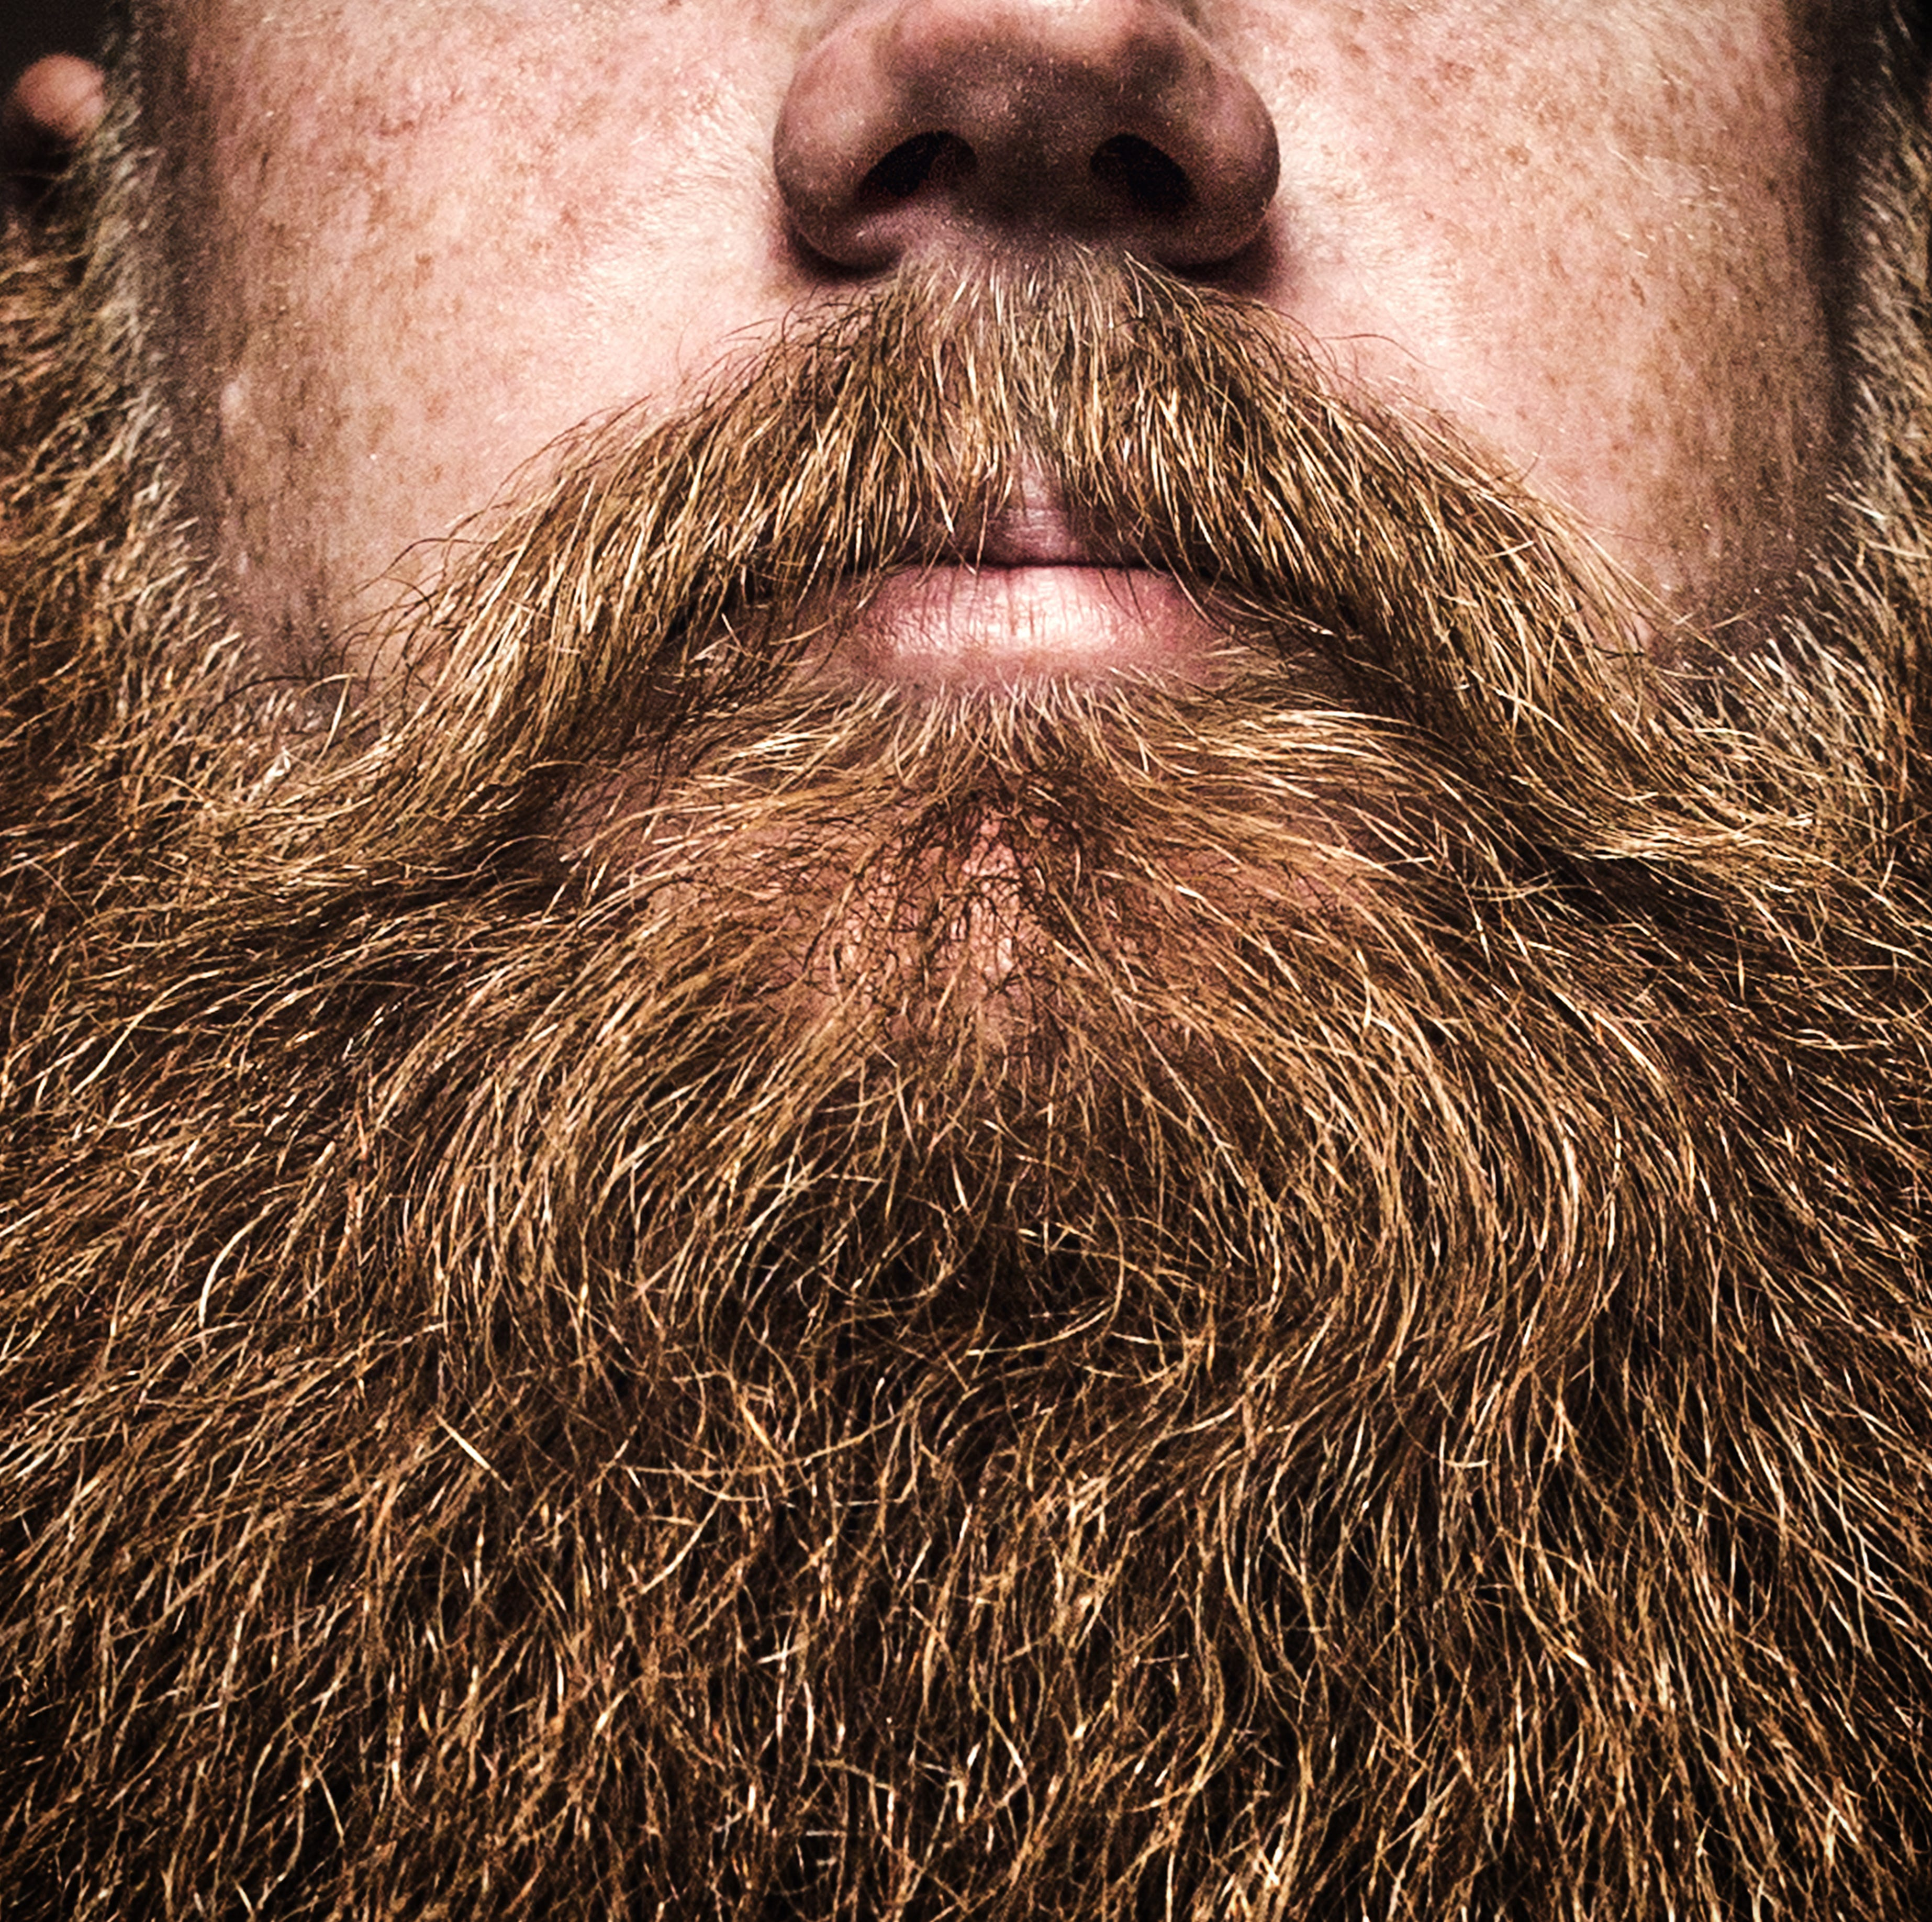 Just in time for beard season: History of facial hair — and shaving — goes back centuries